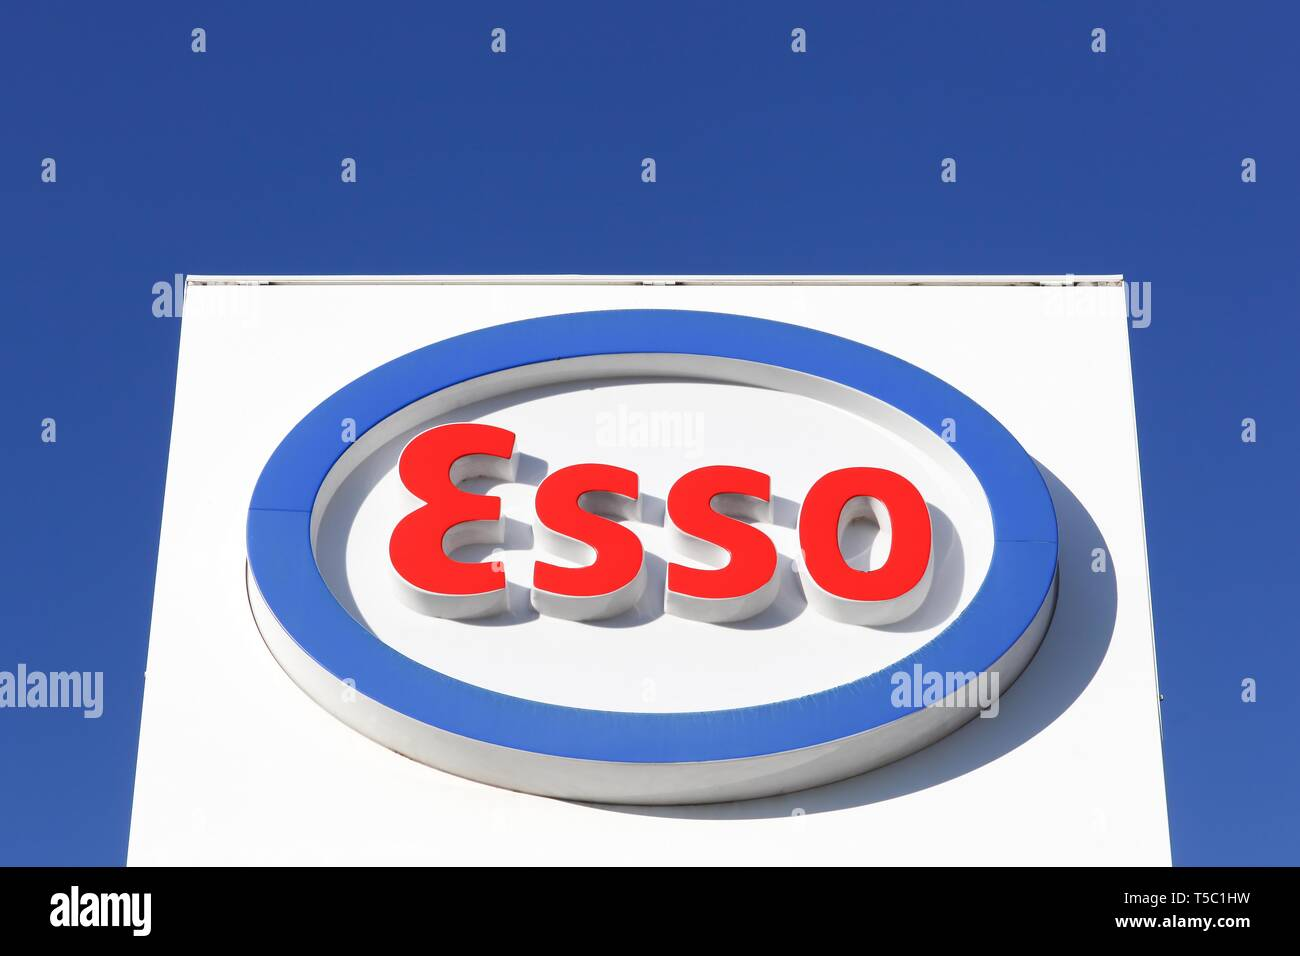 Montelimar, France - November 2, 2018: Esso logo on a panel. Esso is an international trade name for ExxonMobil - Stock Image